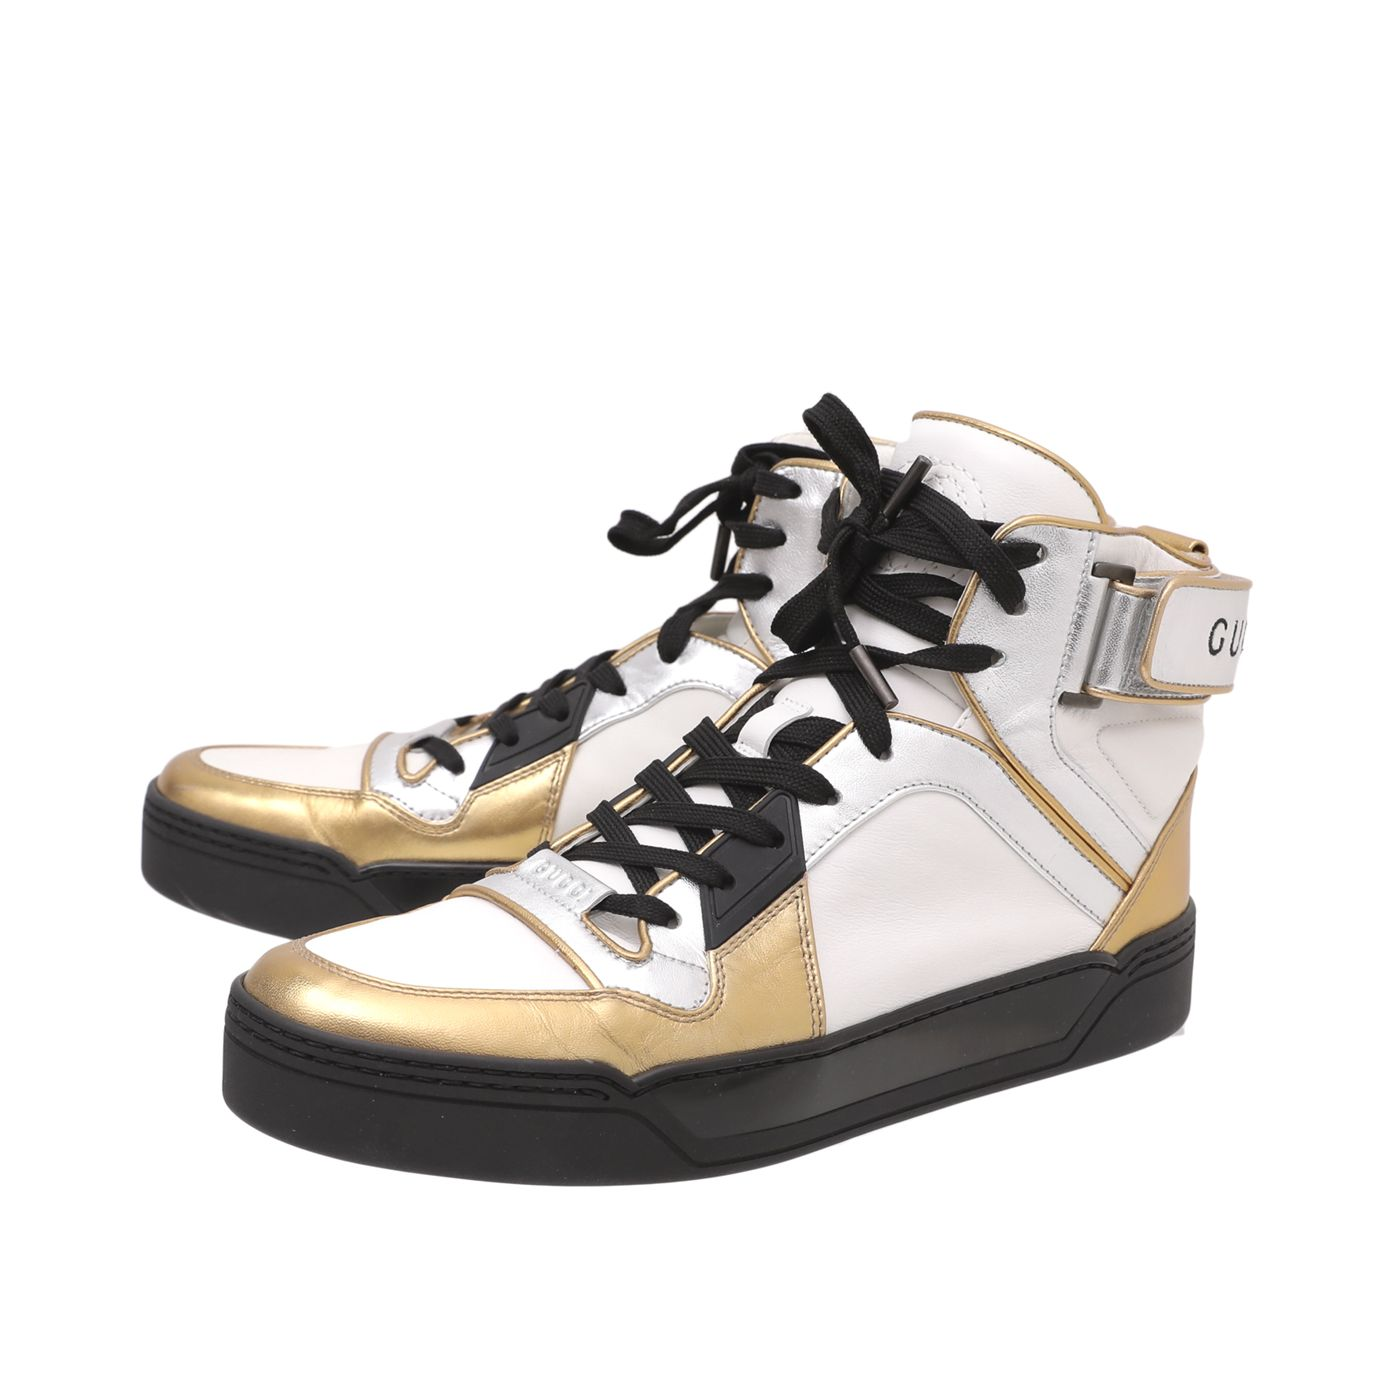 Gucci Tricolor High Top Sneakers 41.5